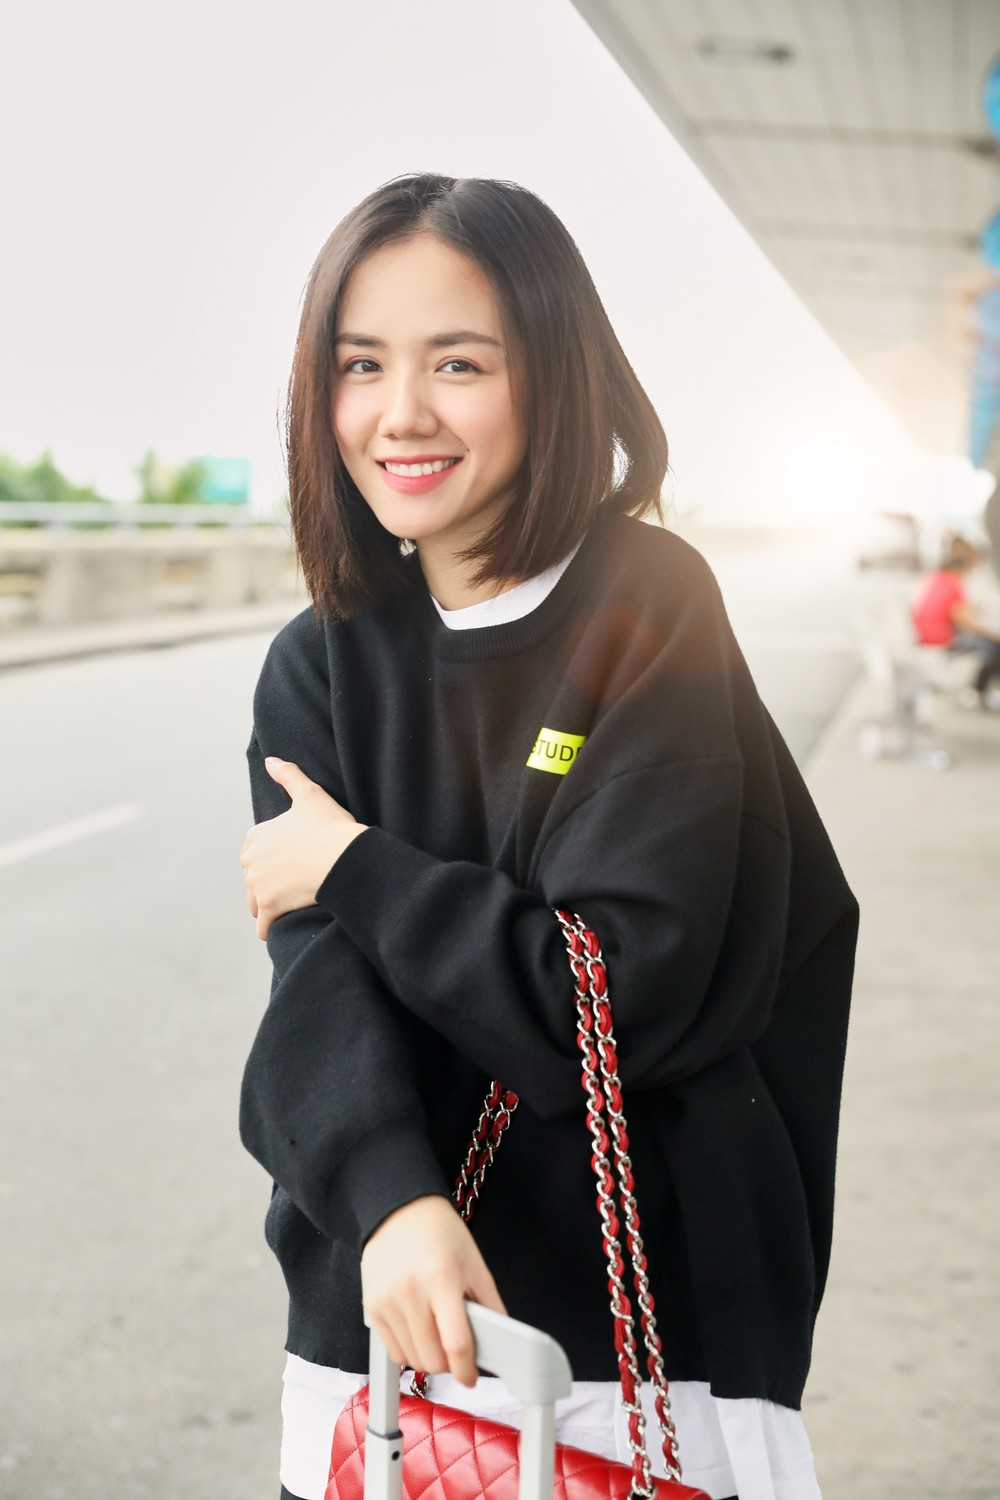 voh-toc-duoi-thang-dep-voh.com.vn-anh11